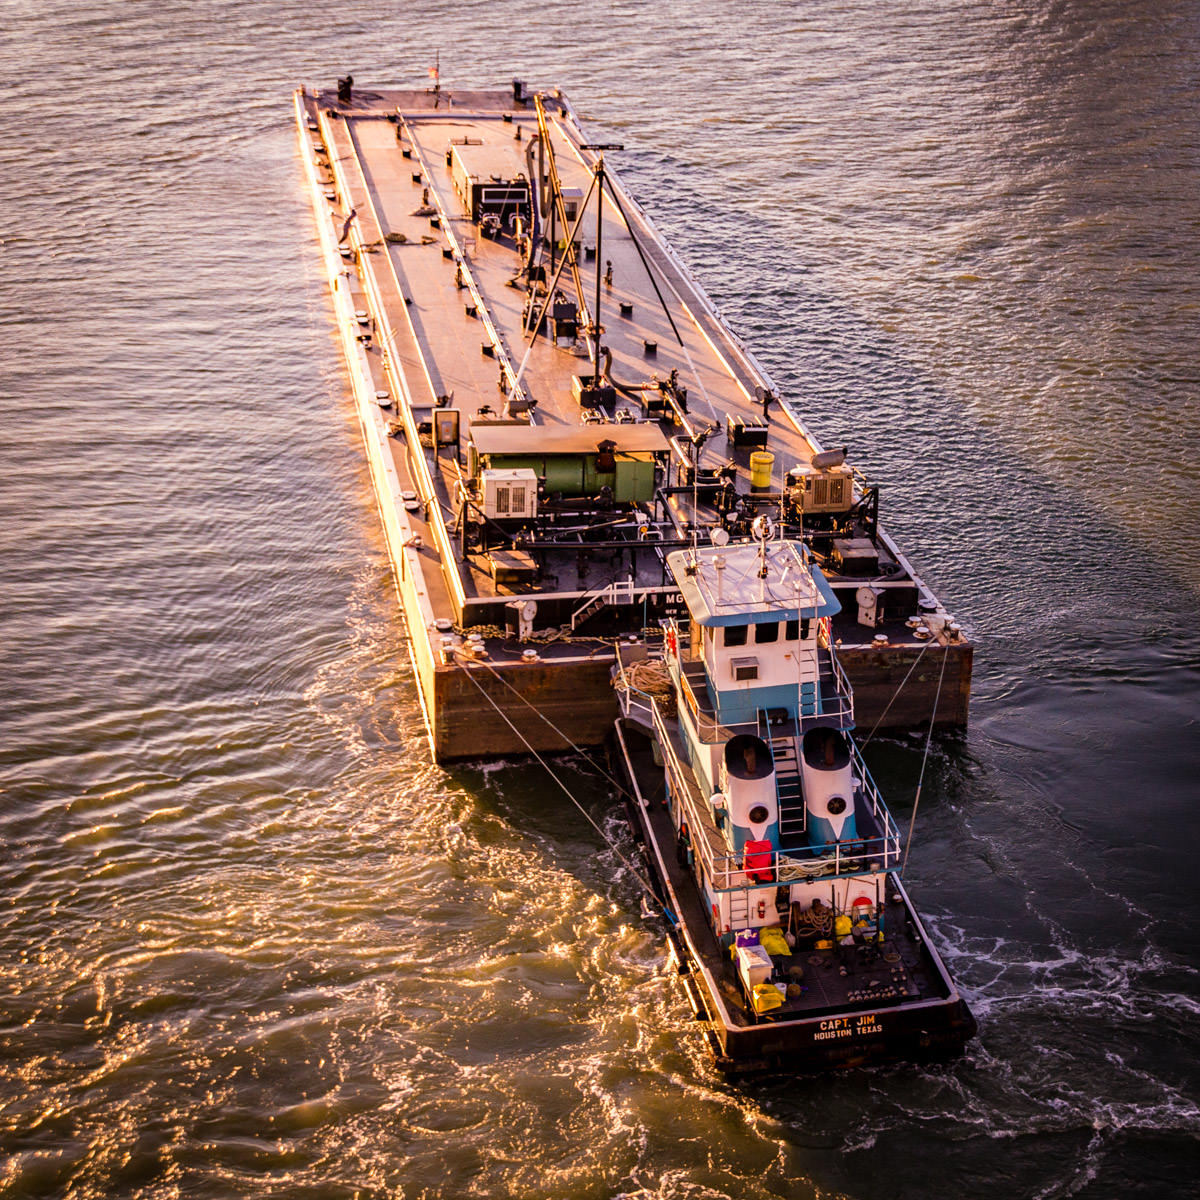 A fuel barge is pushed by a towboat as the sun sets over the Port of Galveston, Texas.